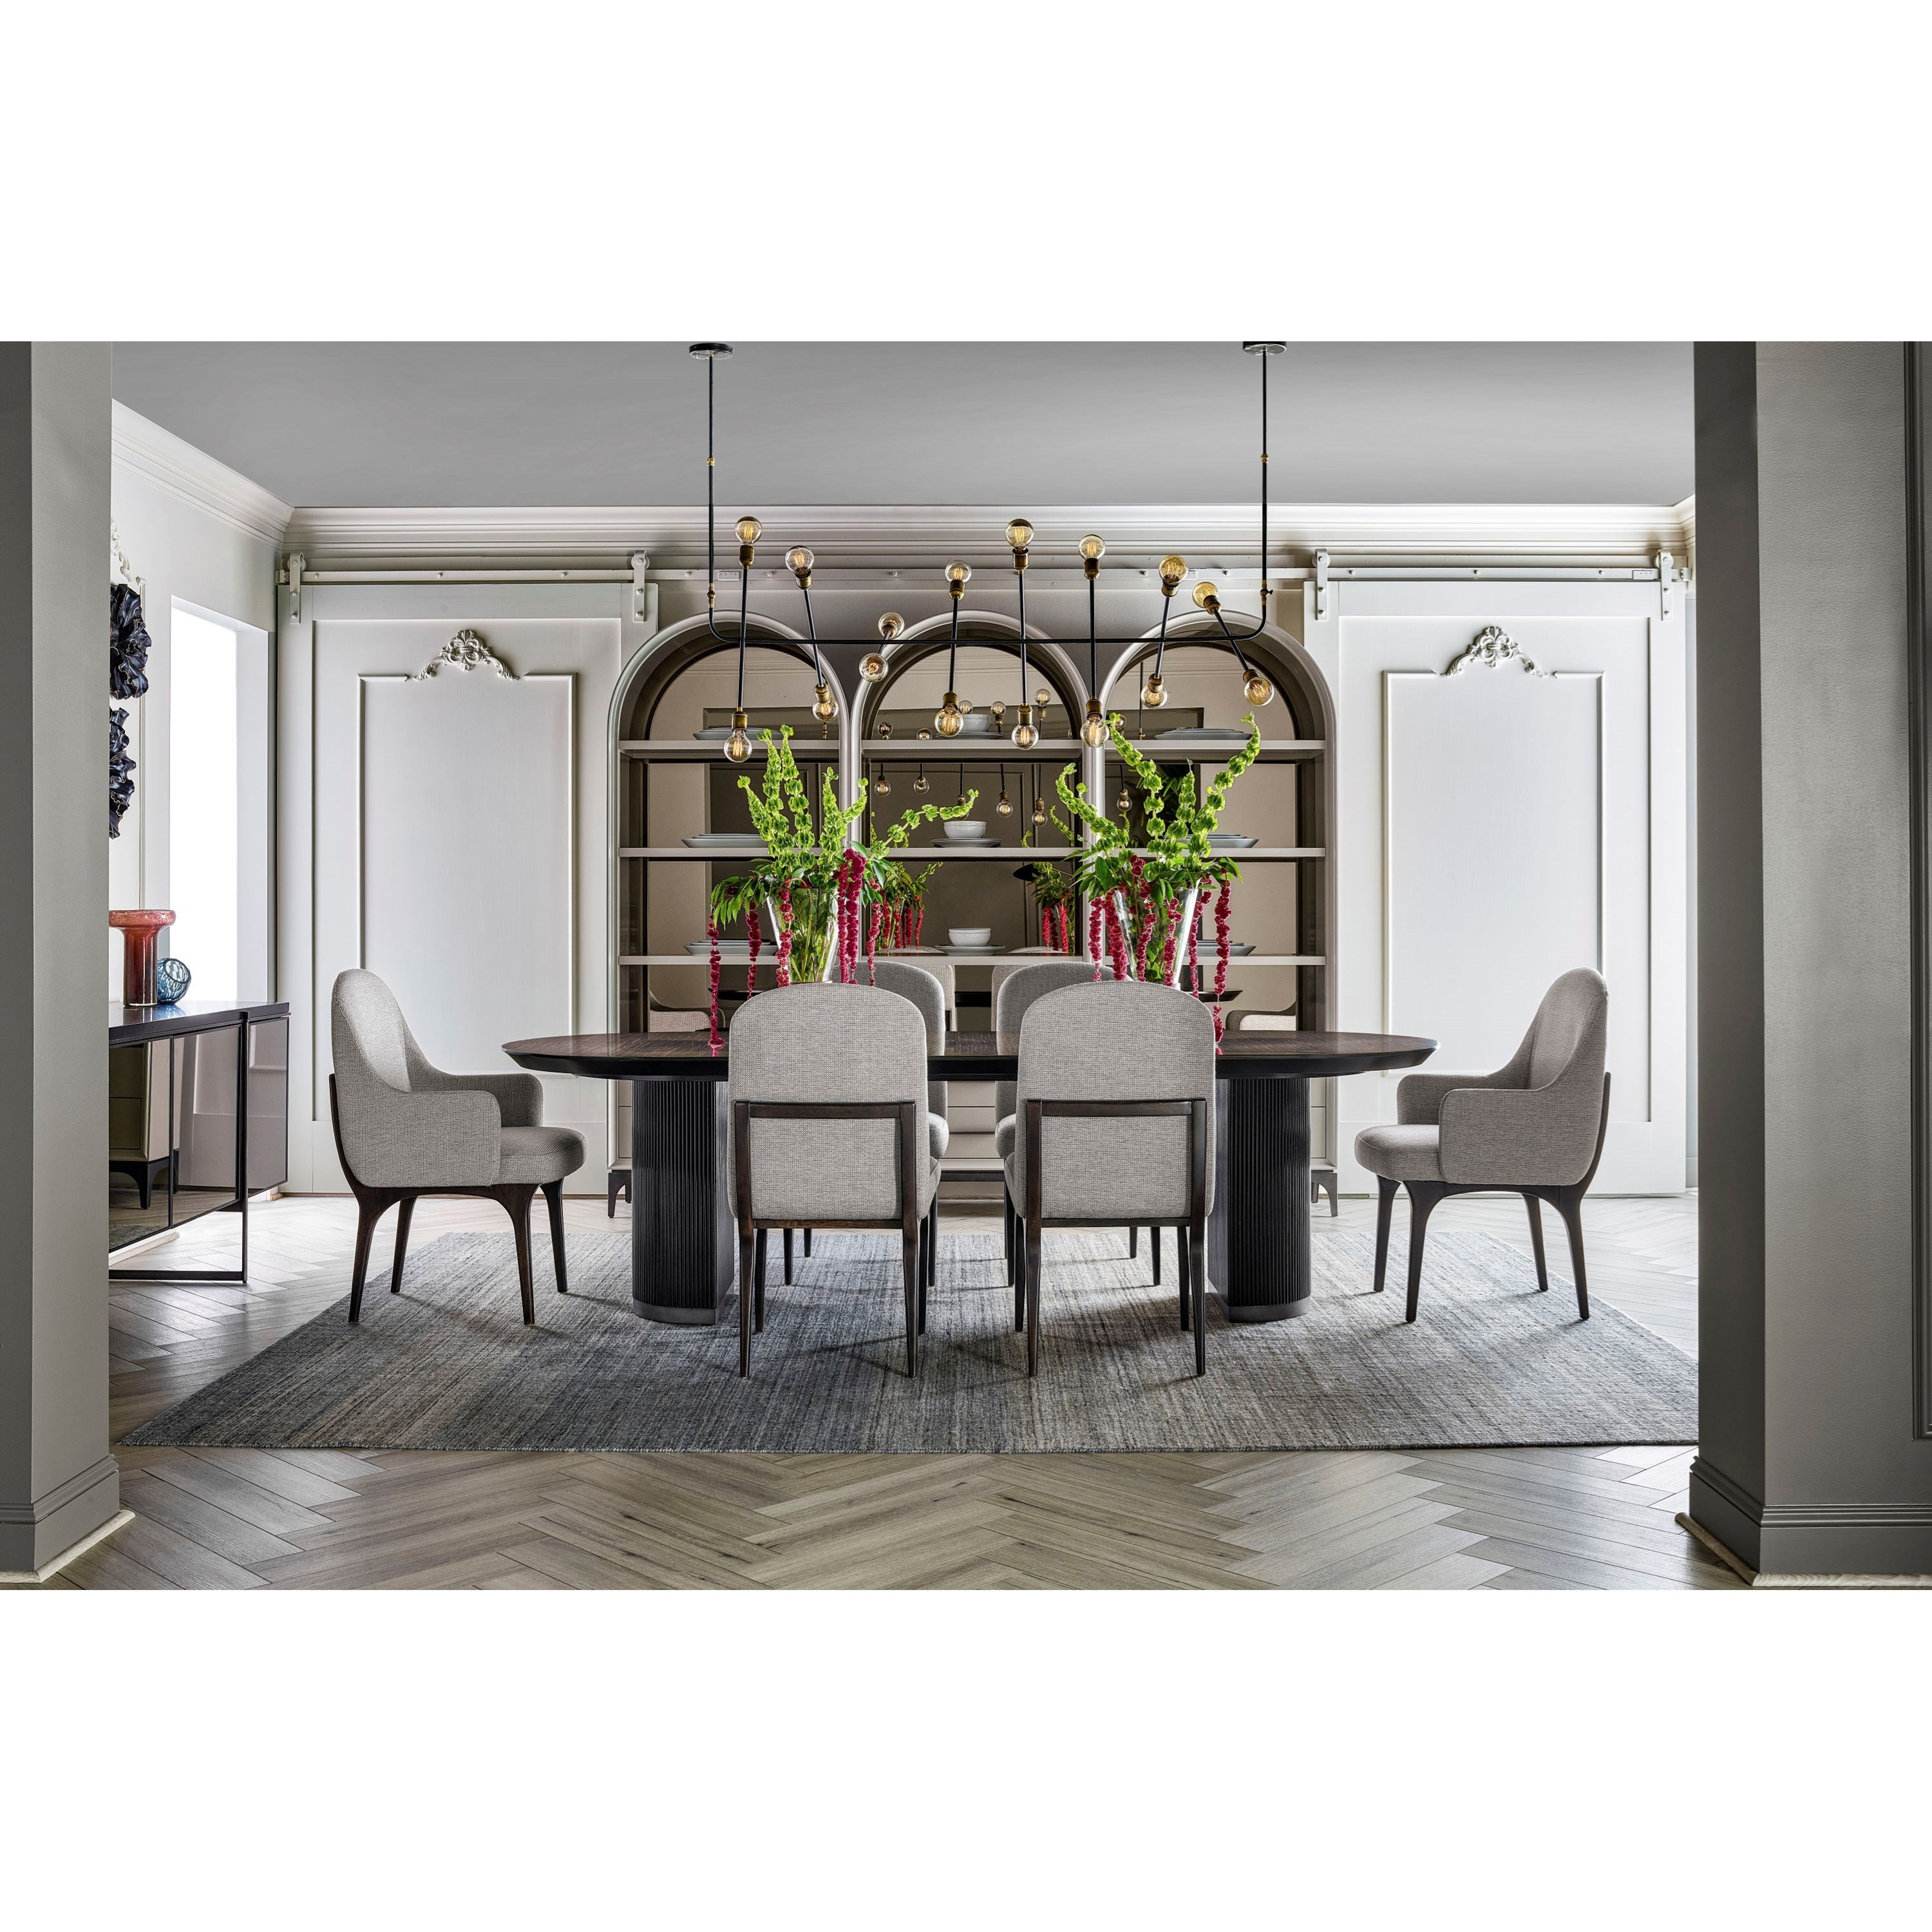 Nina Magon 941 7-Piece Dining Table and Chair Set by Universal at Baer's Furniture